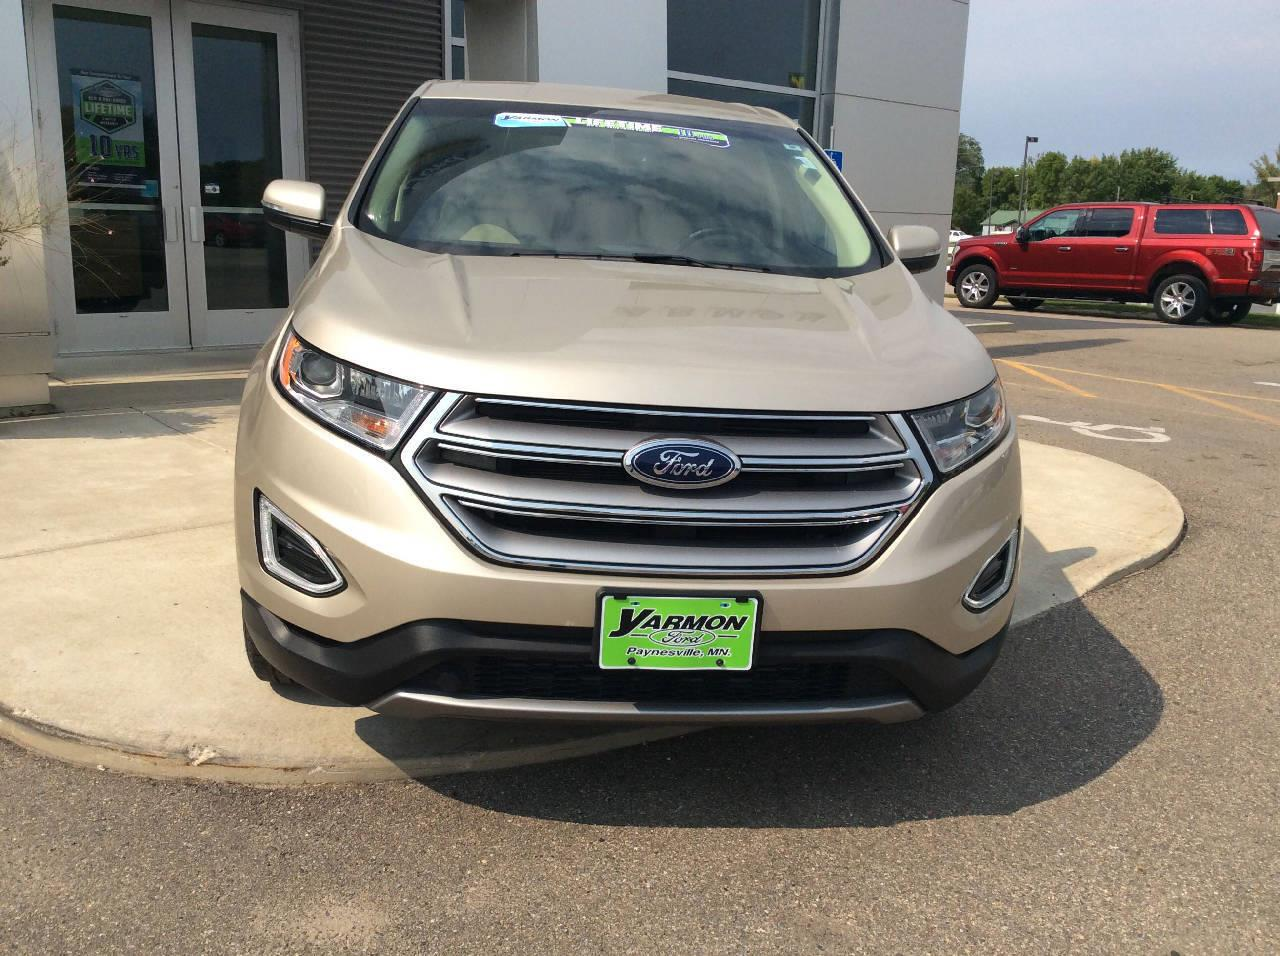 Used 2018 Ford Edge SEL with VIN 2FMPK3J98JBC01020 for sale in Paynesville, Minnesota